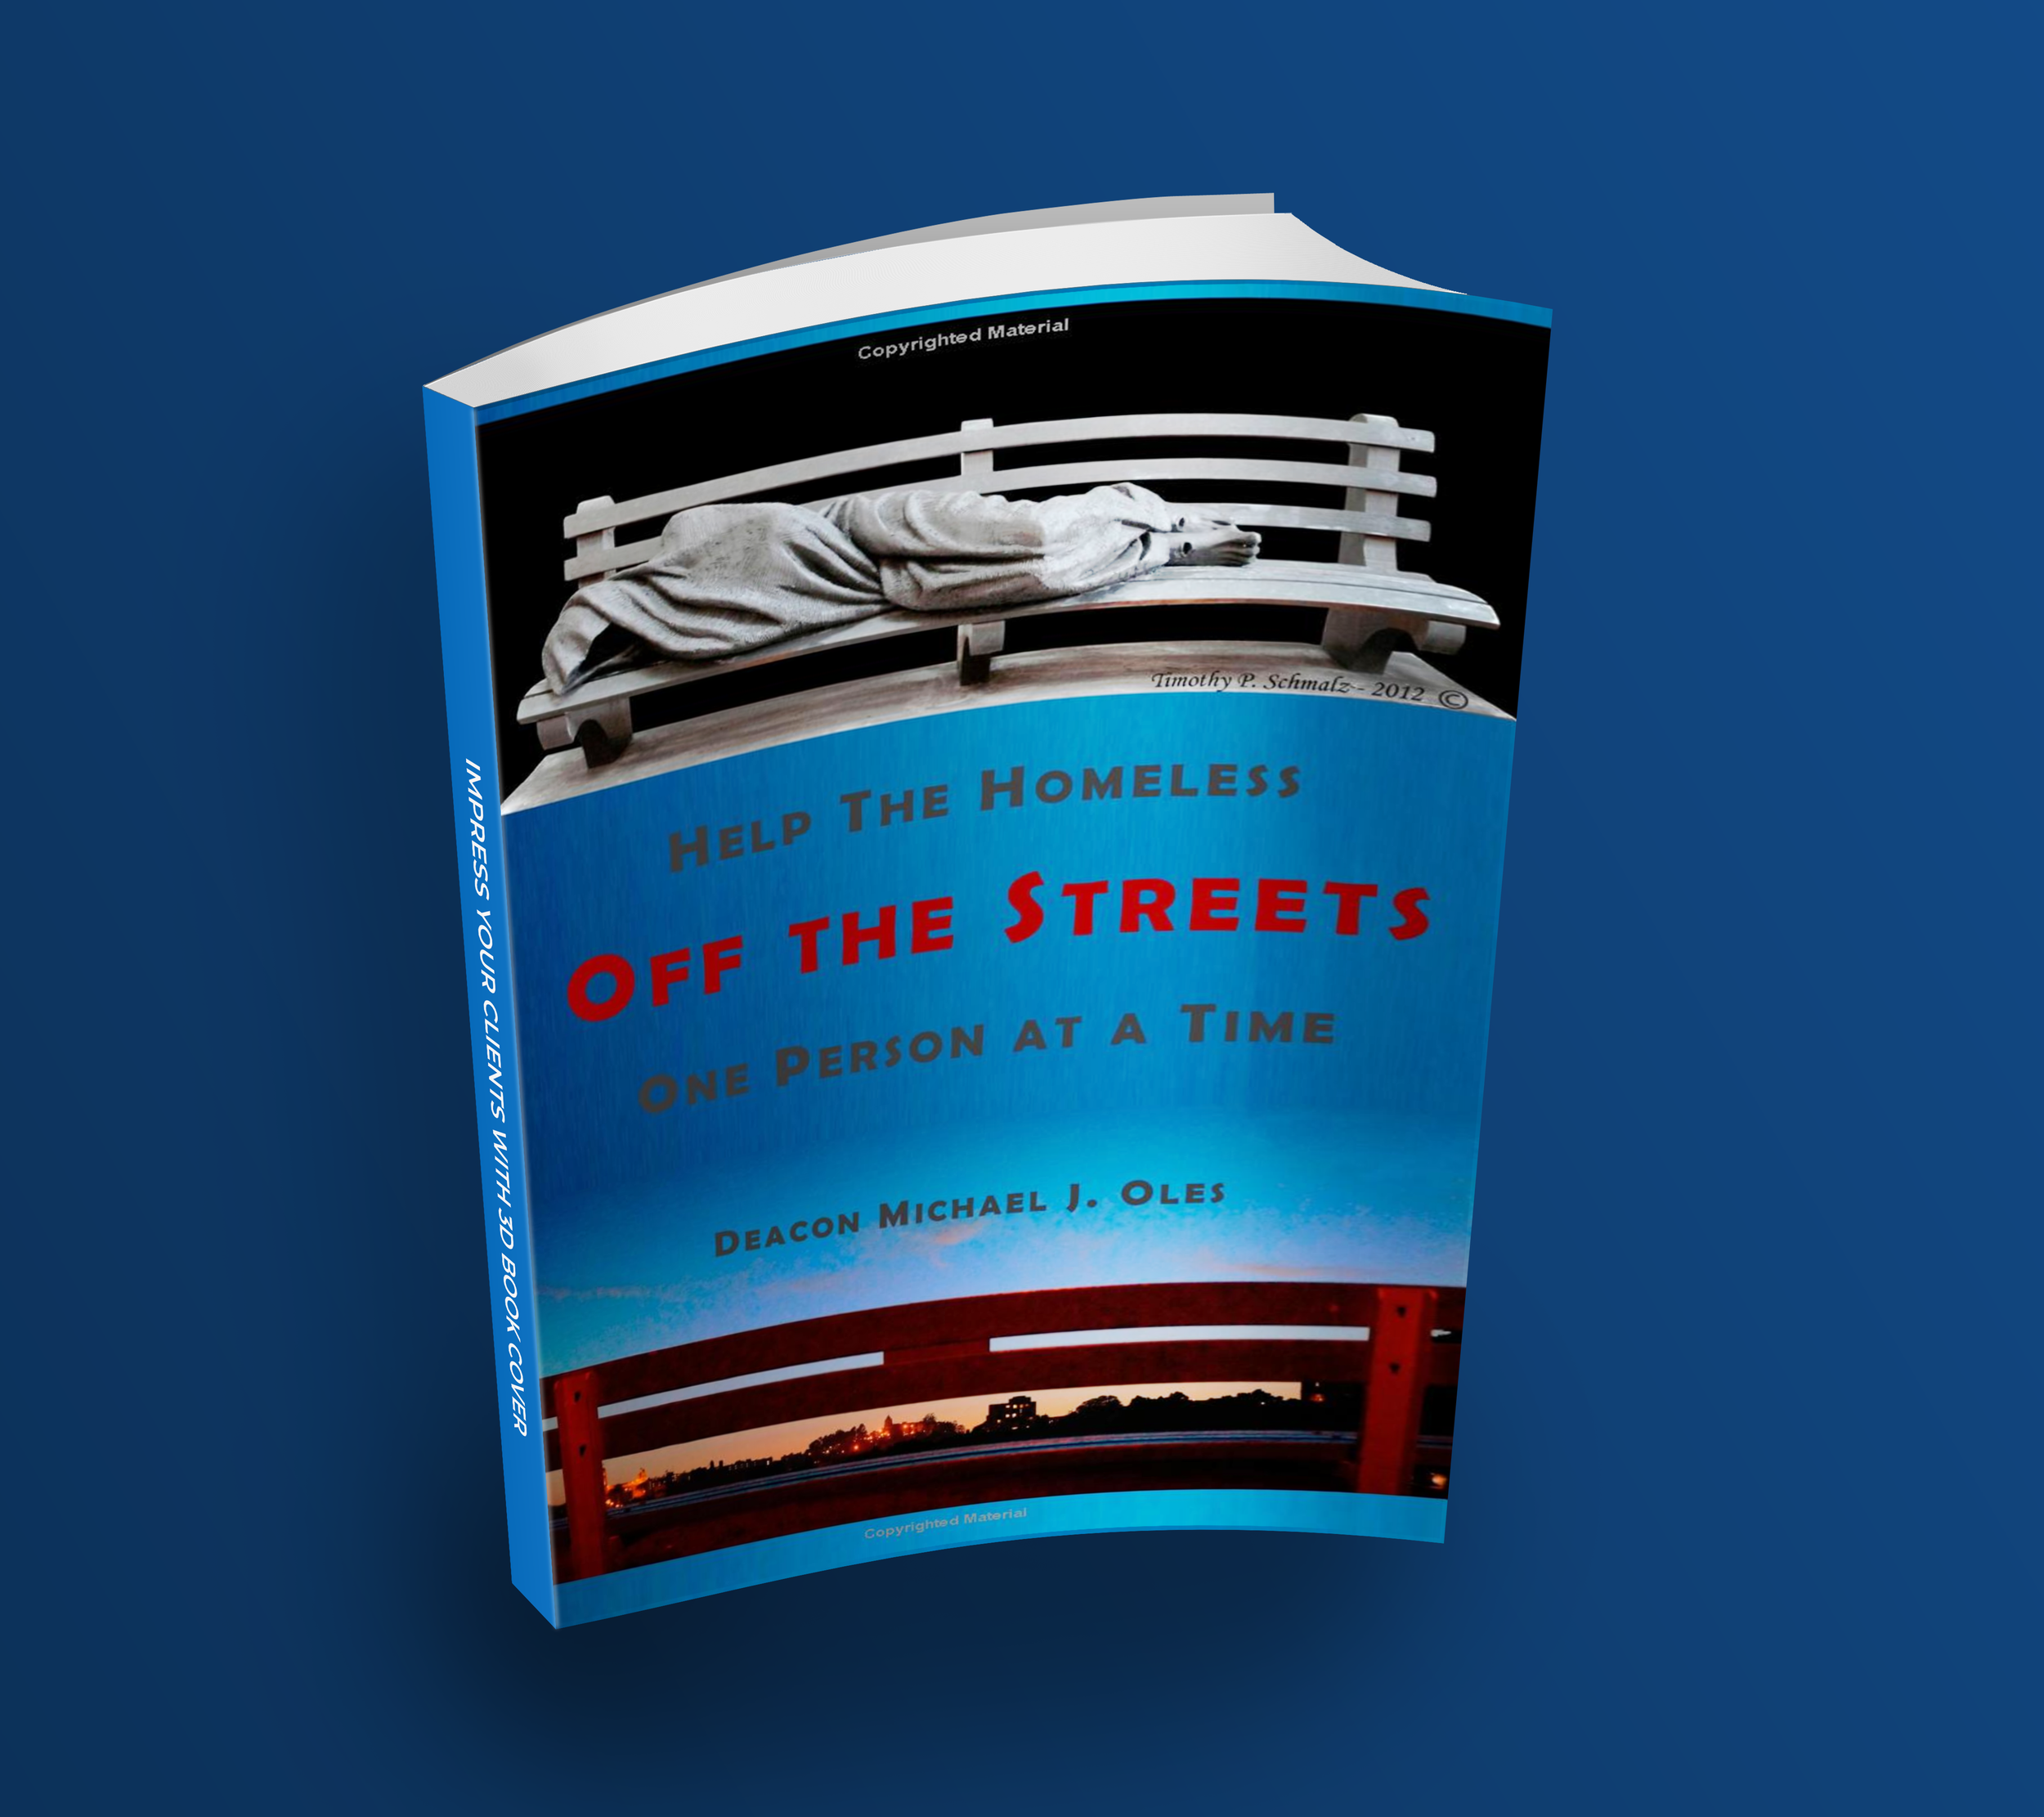 Get the Book! - The book gives an in-depth background to OFF THE STREETS, as well as a template for what's involved in forming an OFF THE STREETS chapter in your community.100% of profit goes towards security deposits for qualified homeless persons and families coming OFF THE STREETS.